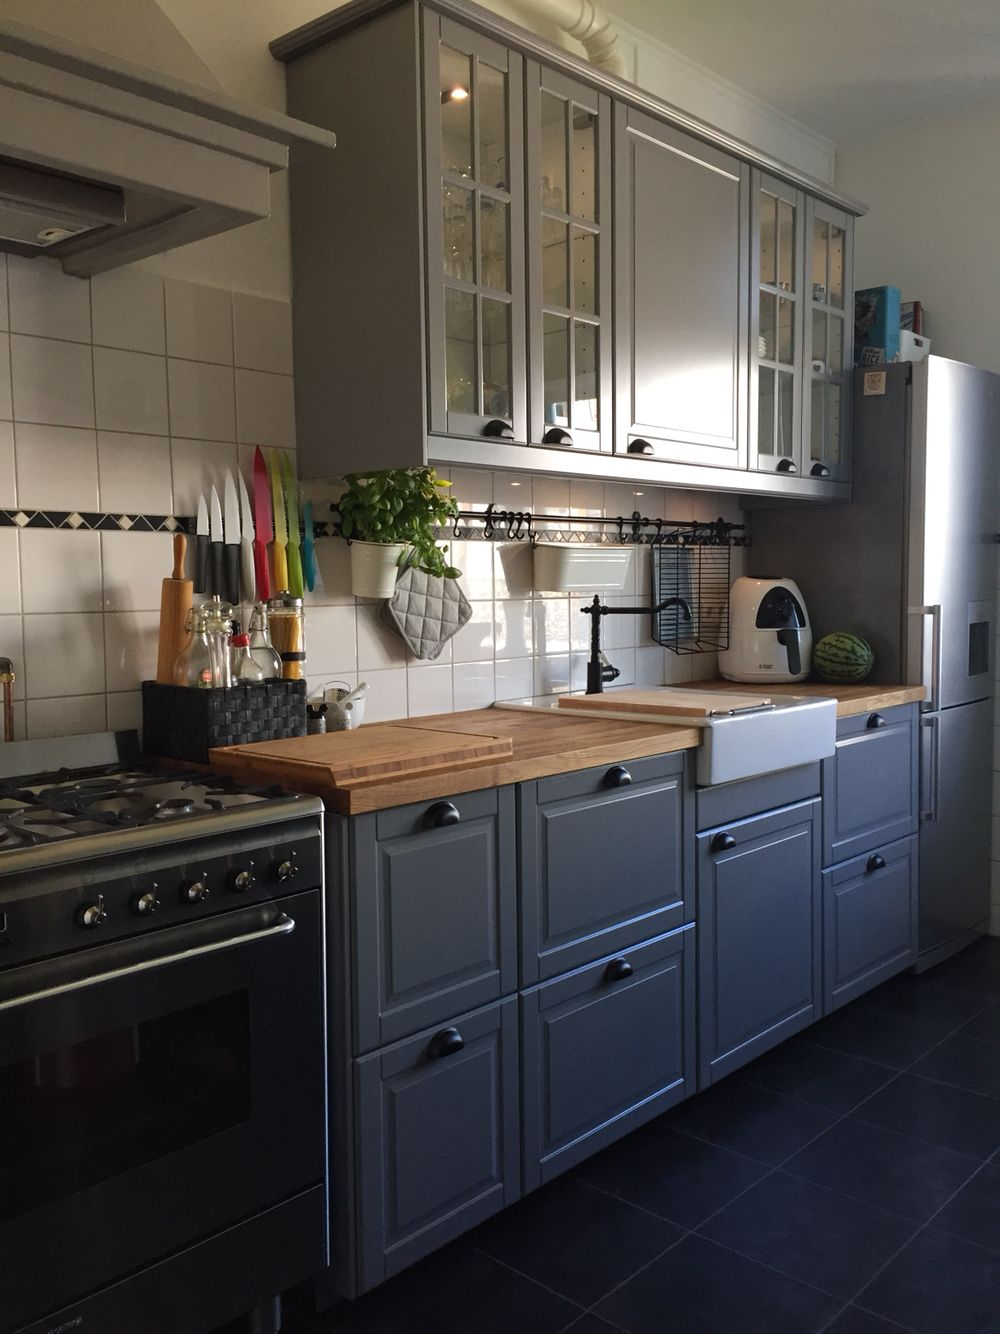 Best New Kitchen Ikea Bodbyn Grey Cuisine Bodbyn Cuisine 400 x 300